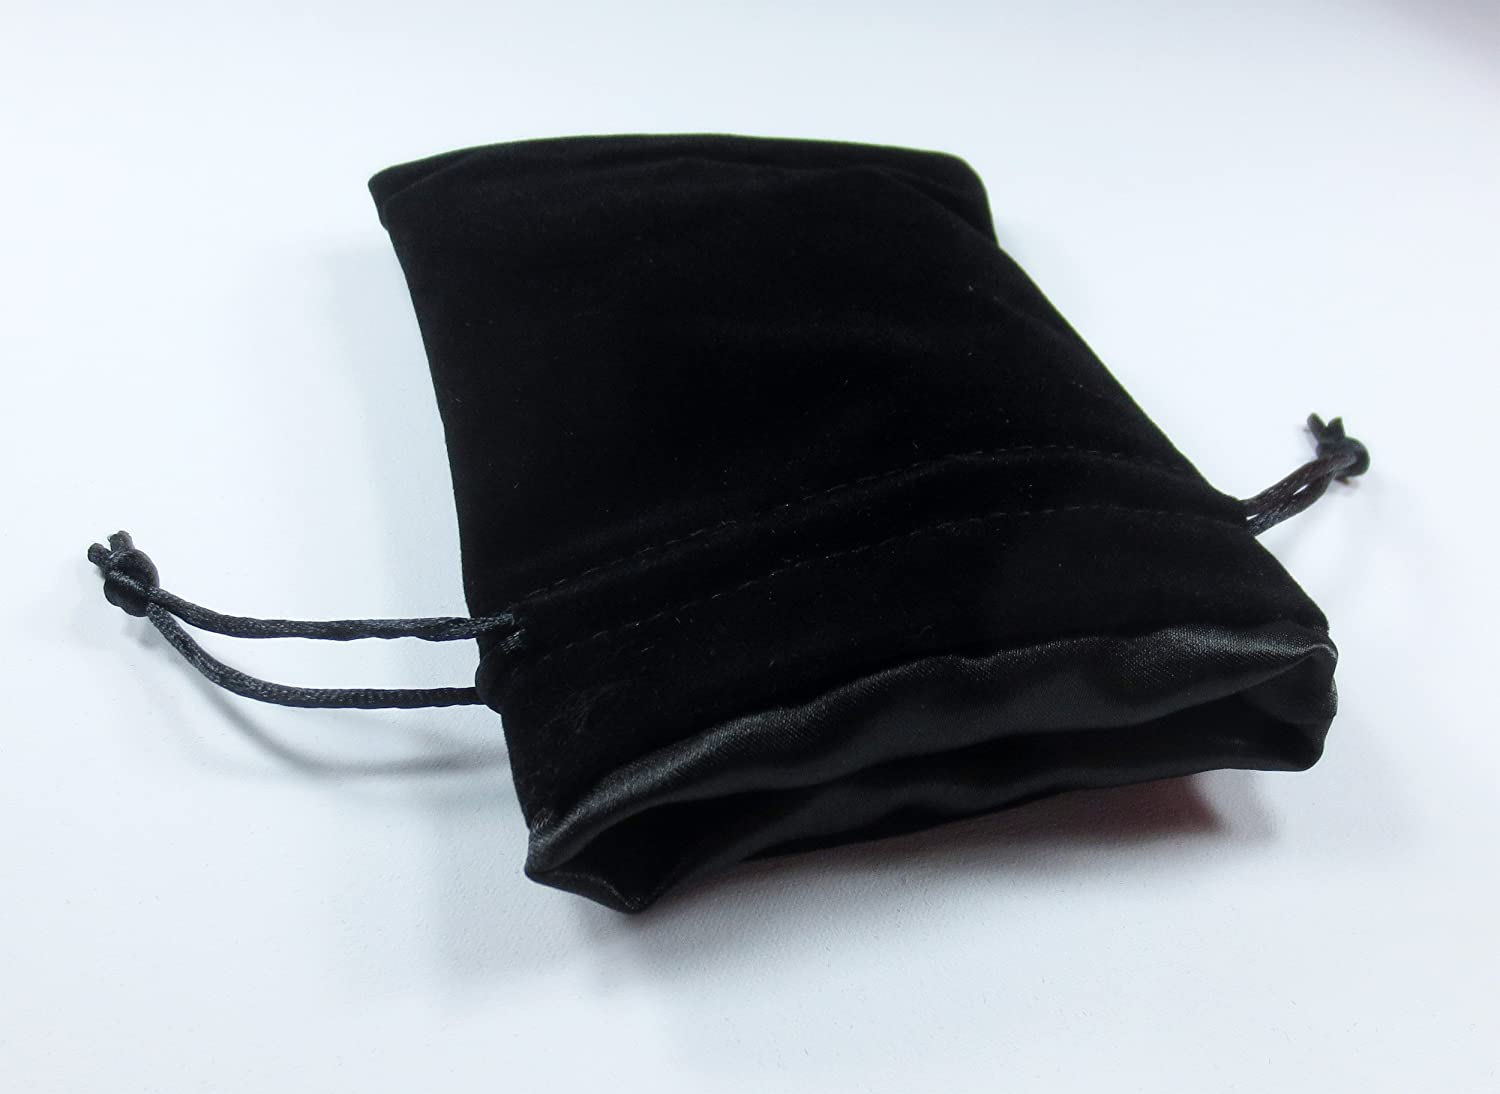 4x5  Black Premium Velvet Dice Bag  THE BLACK VOID  with Strong Black Satin Lining (Holds 5 Sets   35 Dice)